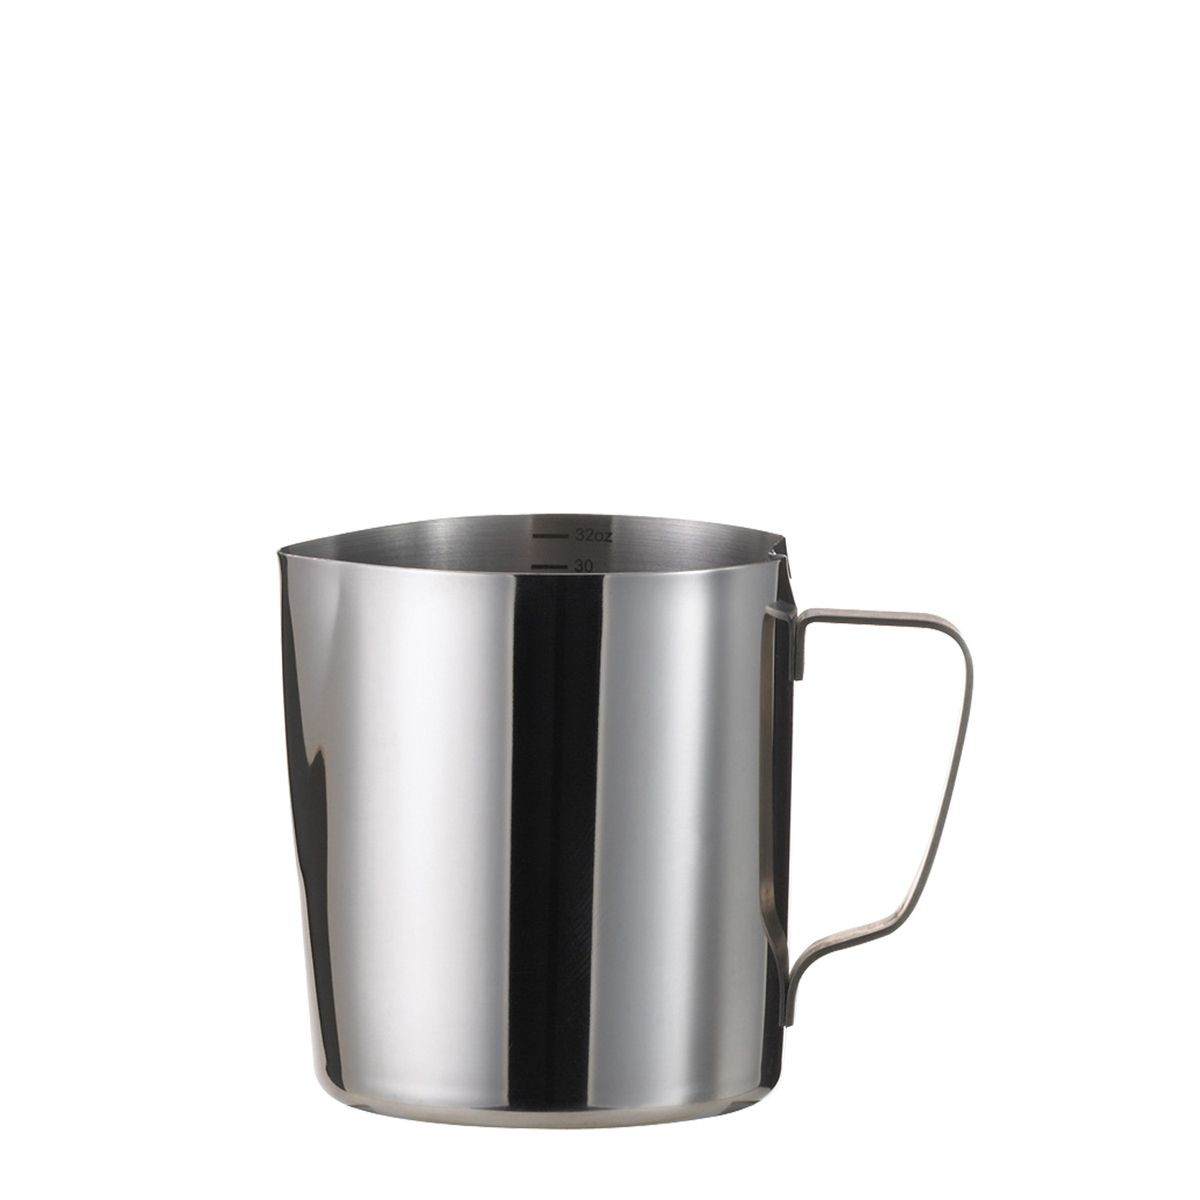 service ideas froth326 frothing pitcher 32 oz with 6 oz increments. Black Bedroom Furniture Sets. Home Design Ideas